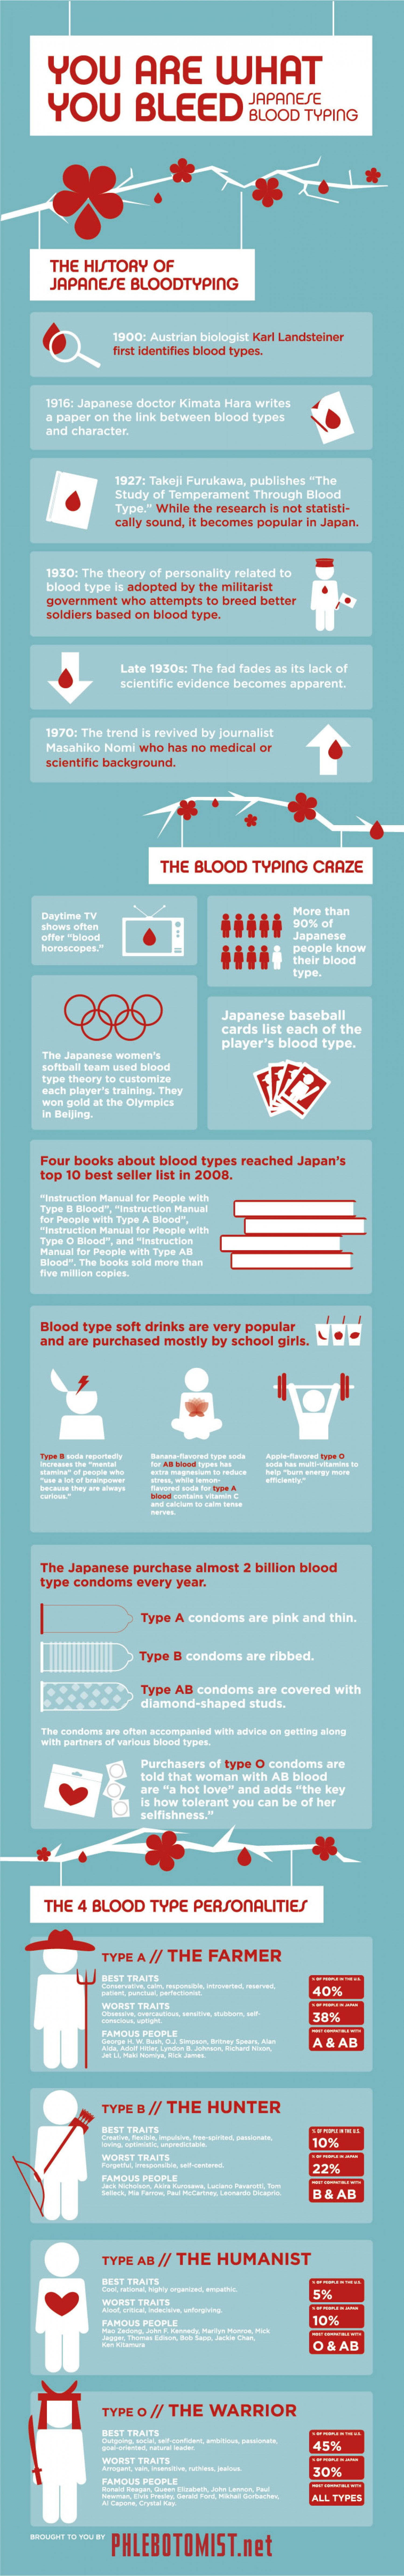 You are what you bleed: Japanese blood typing